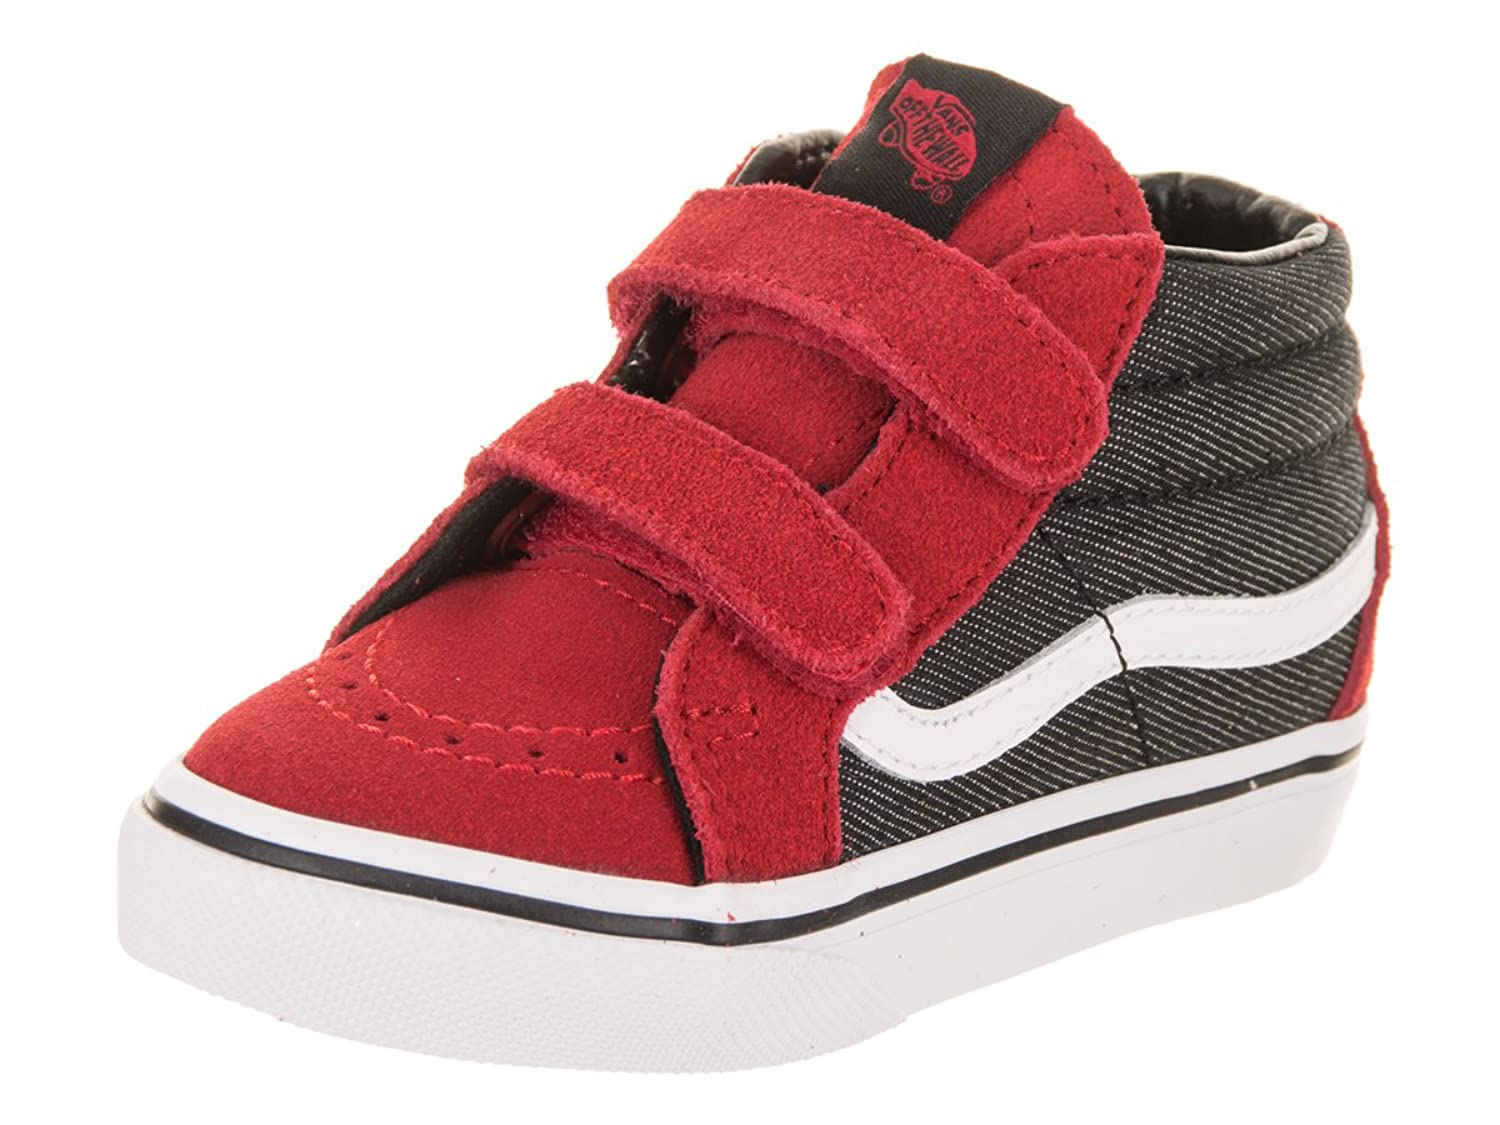 2d629ae2b6 Vans Toddler Sk8-Mid Reissue V VN0A348JQ6W (Suede Suiting) Racing Red